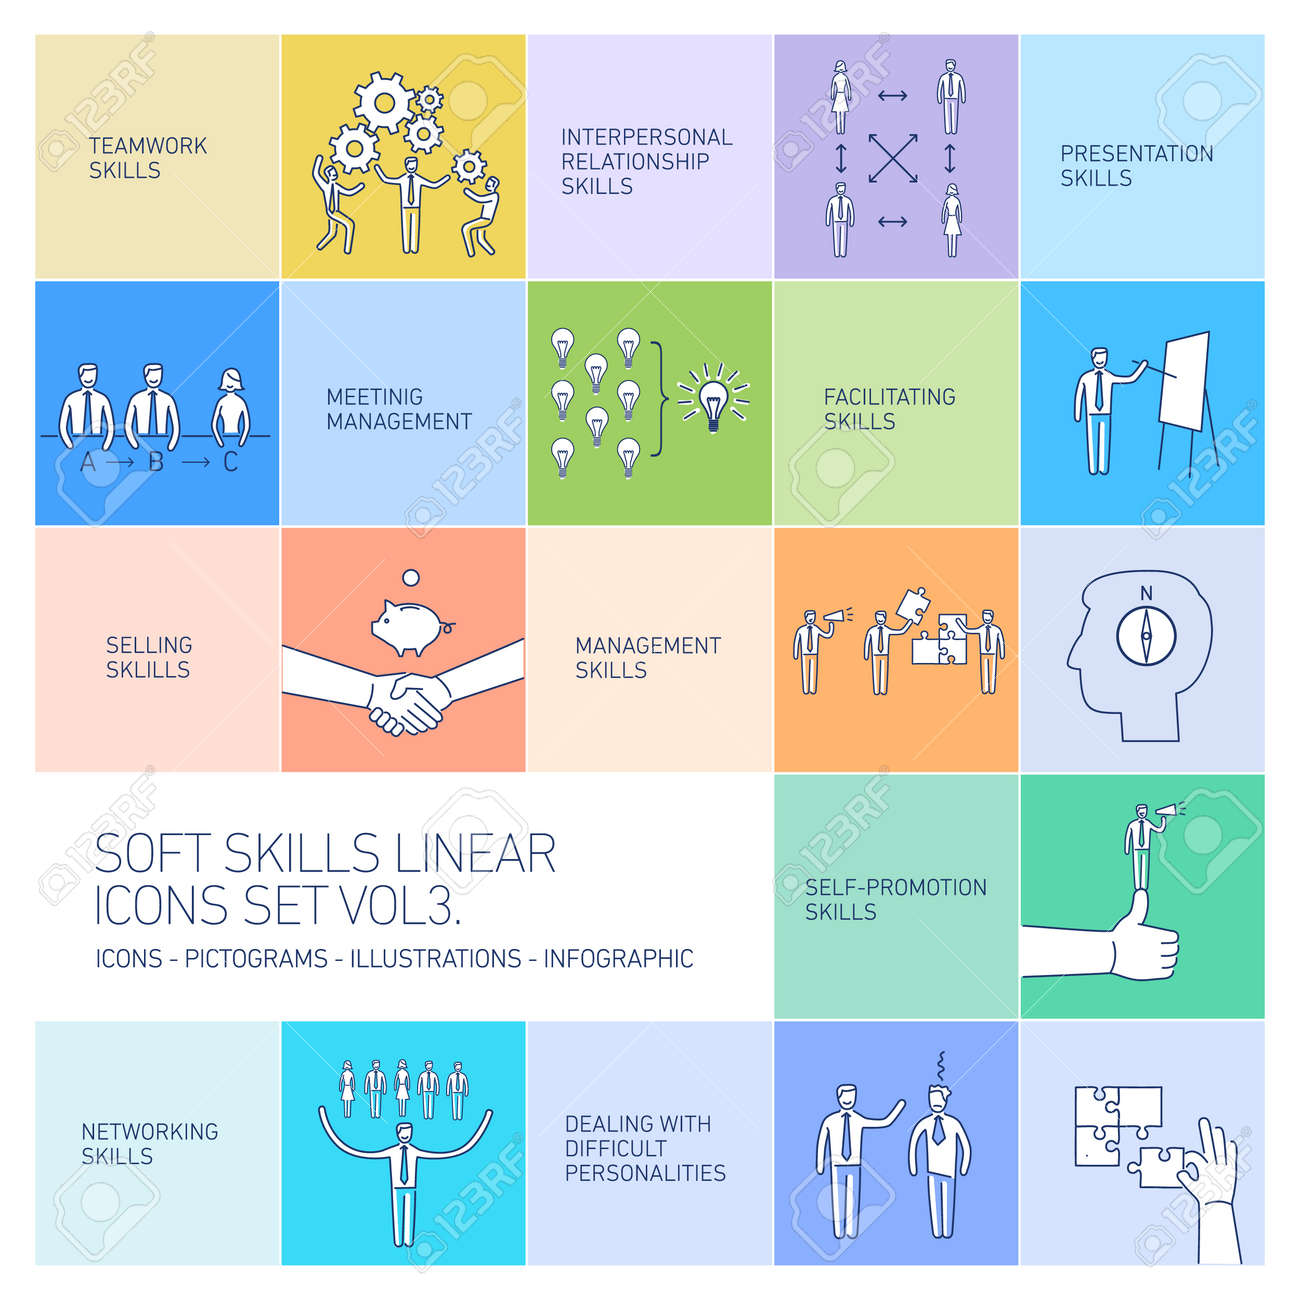 soft skills linear vector icons and pictograms set of human skills soft skills linear vector icons and pictograms set of human skills in business and teamwork on